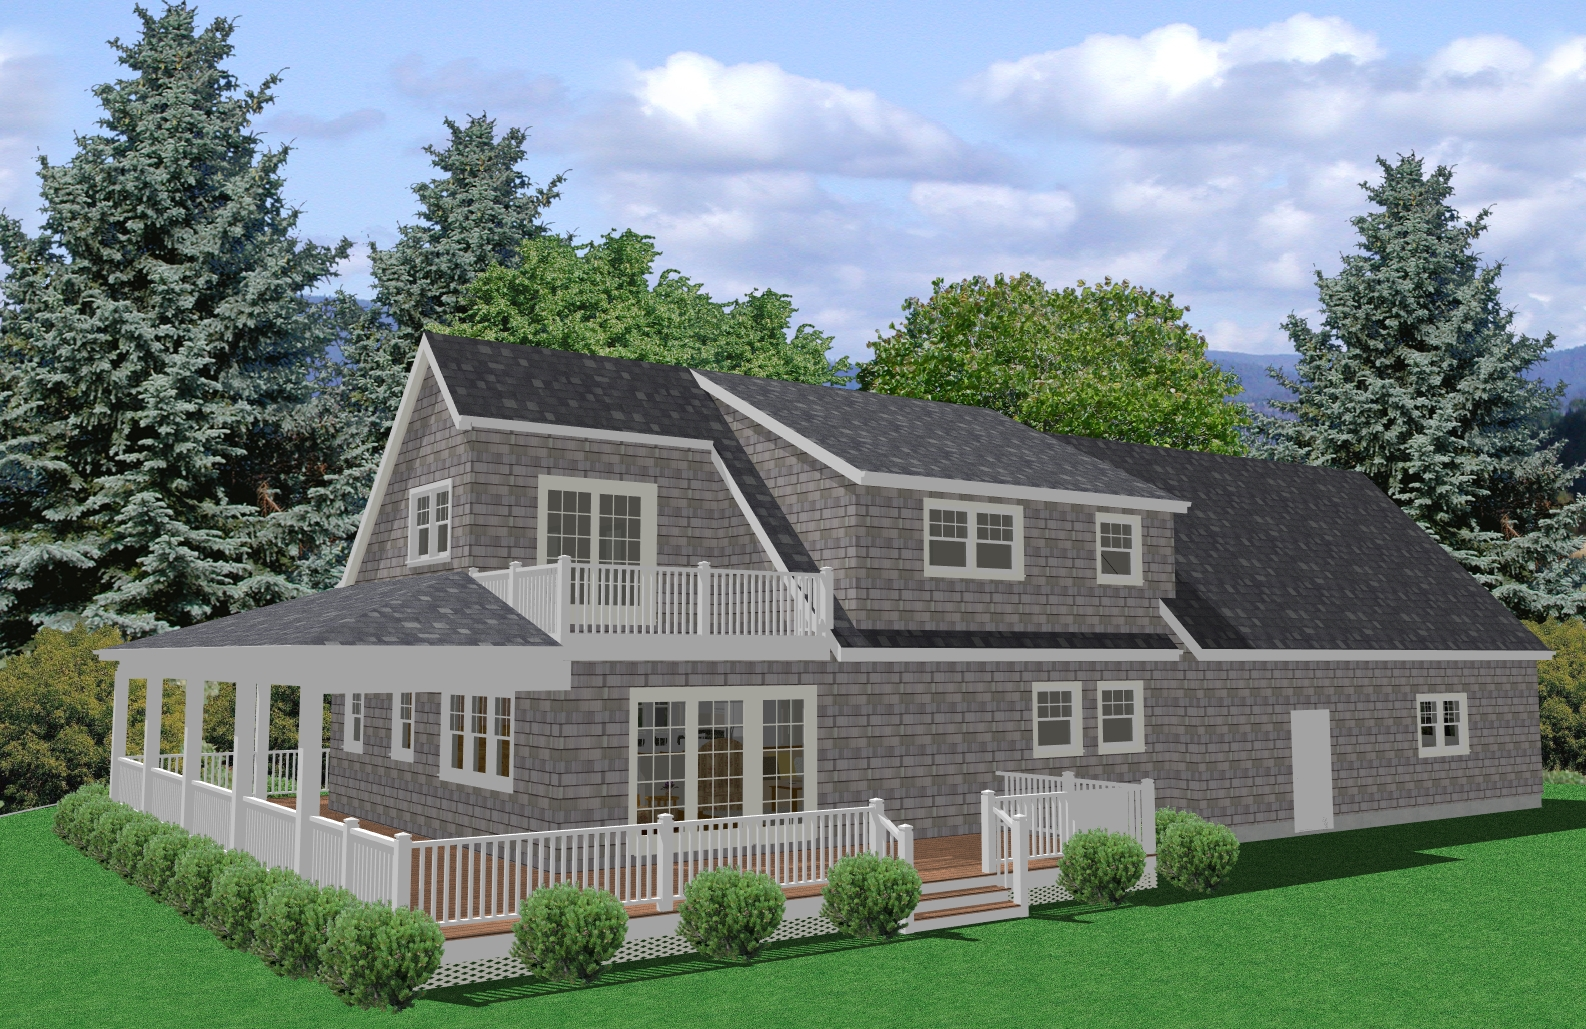 Cape Cod House Plan, 3 Bedroom house plan, Traditional